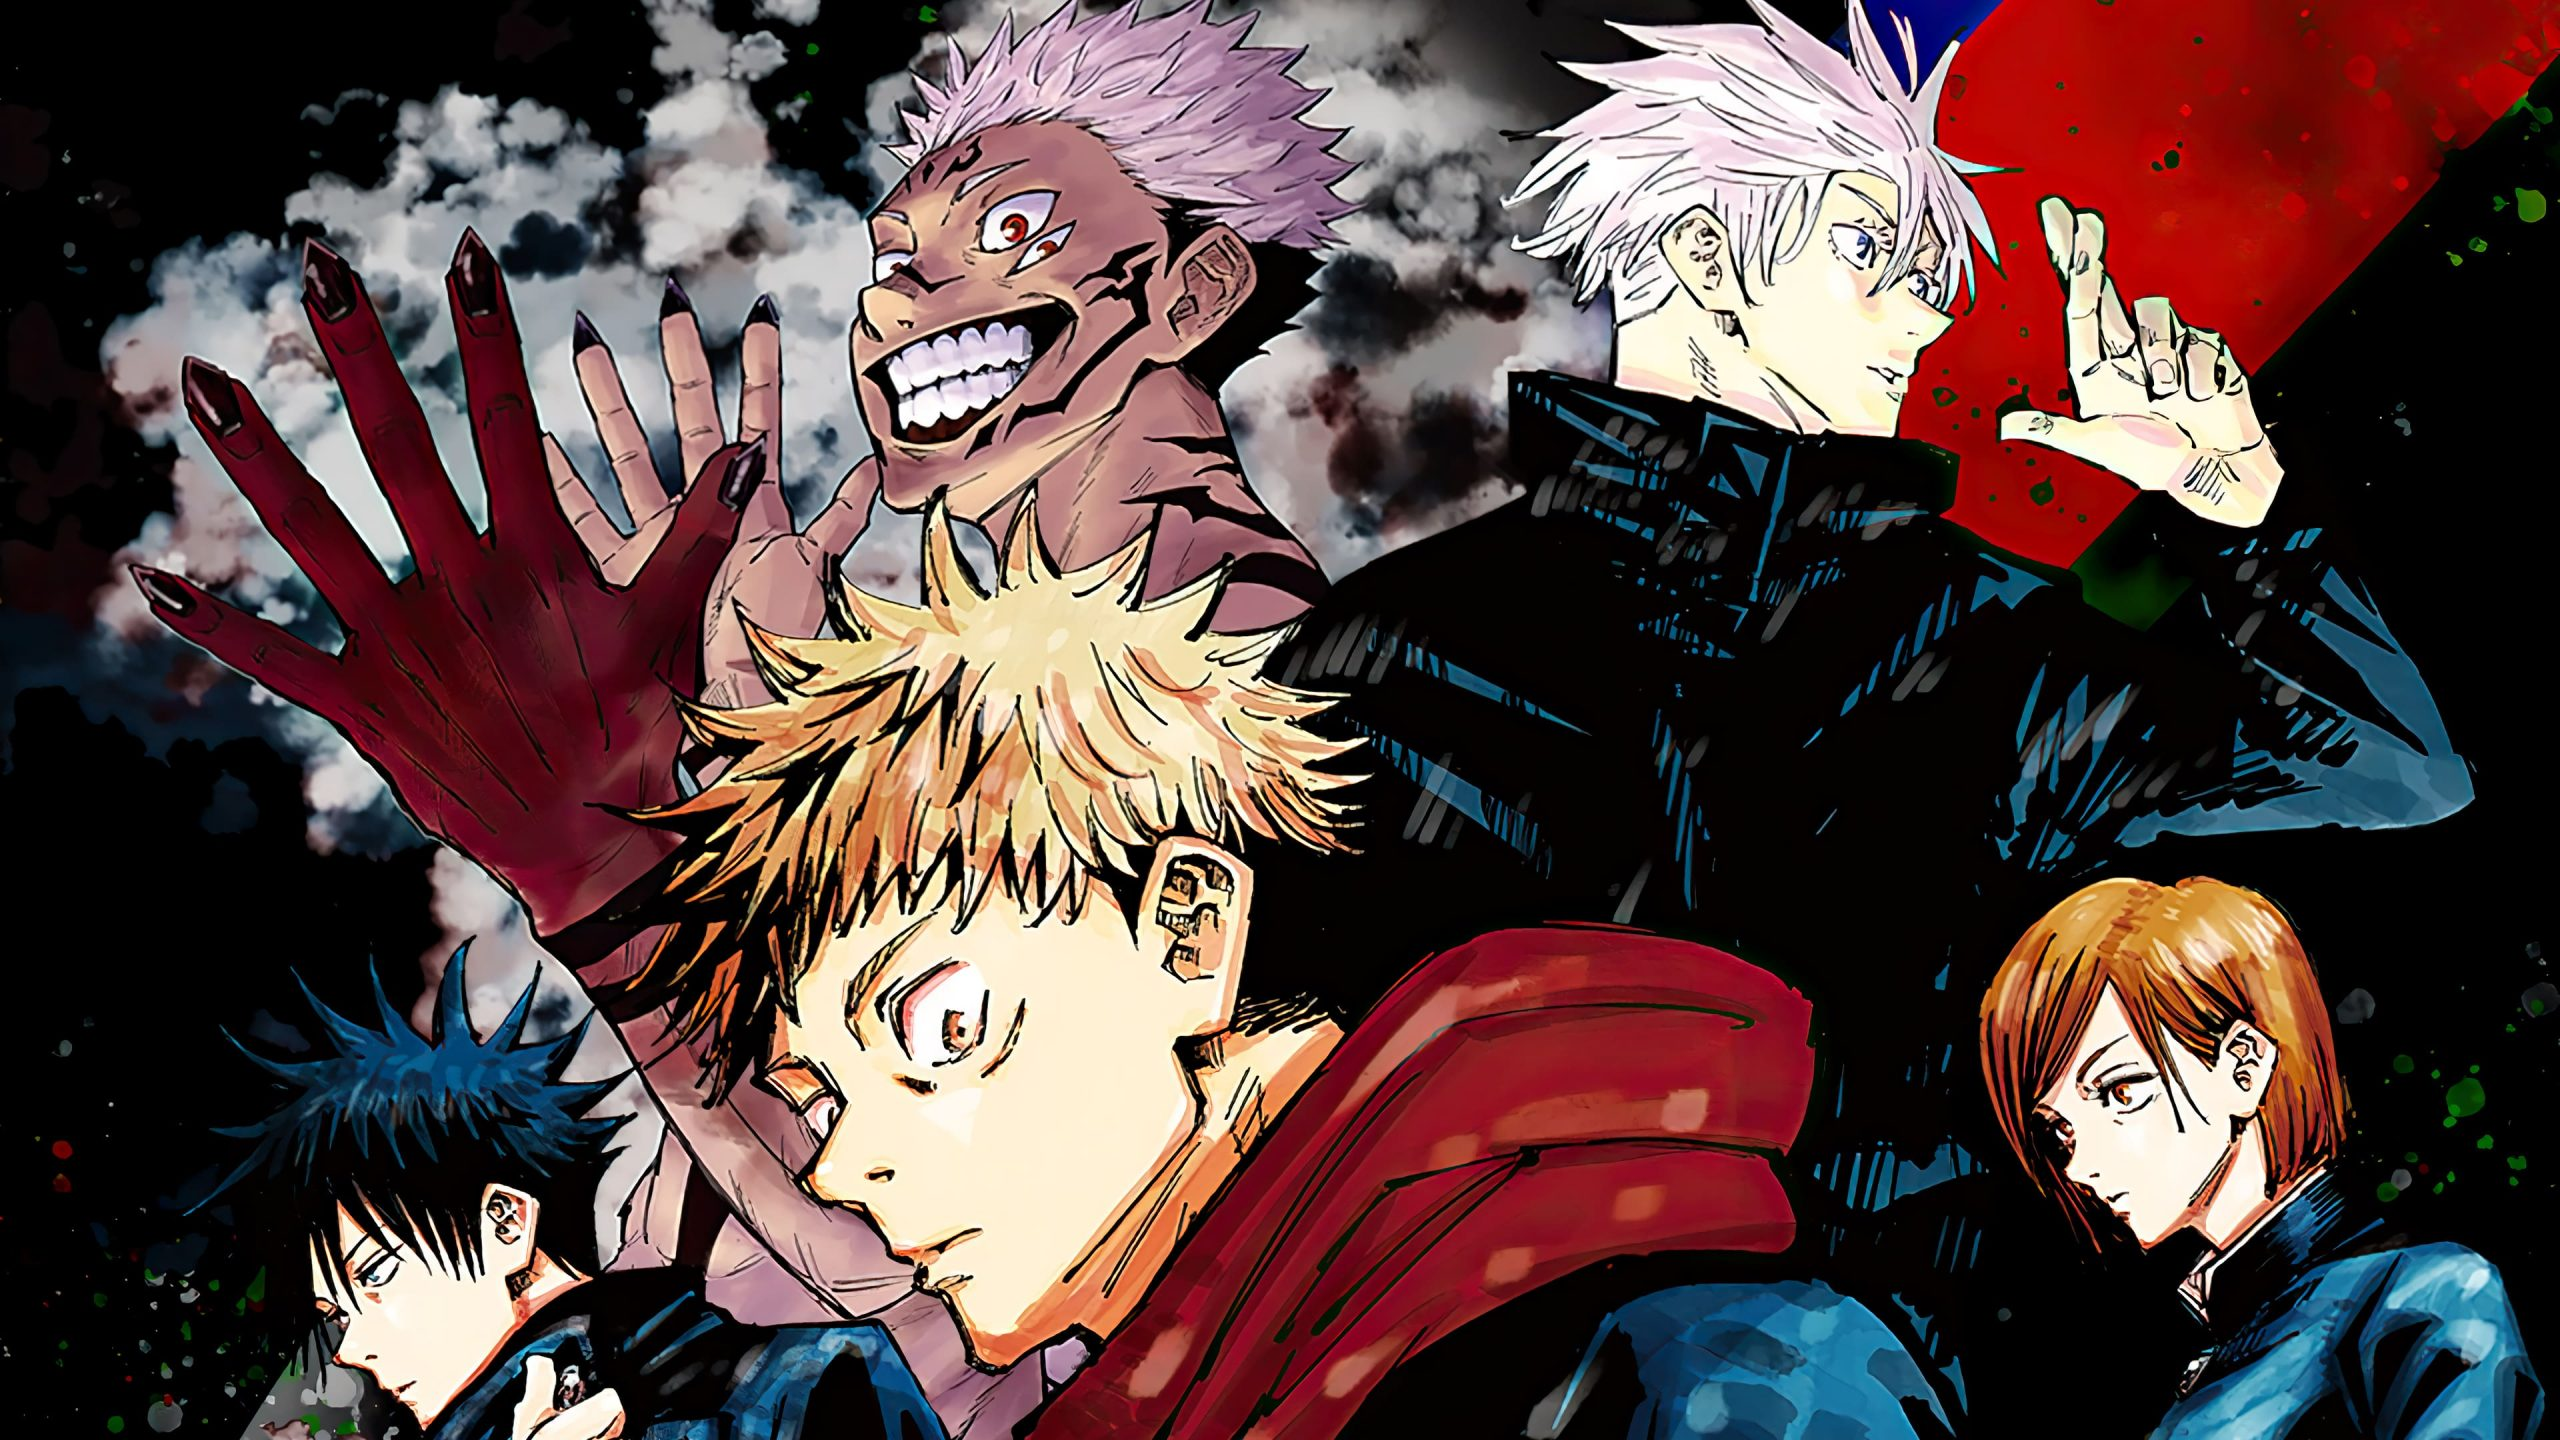 Jujutsu Kaisen Chapter 141 Release Date, Preview Spoilers and No Break